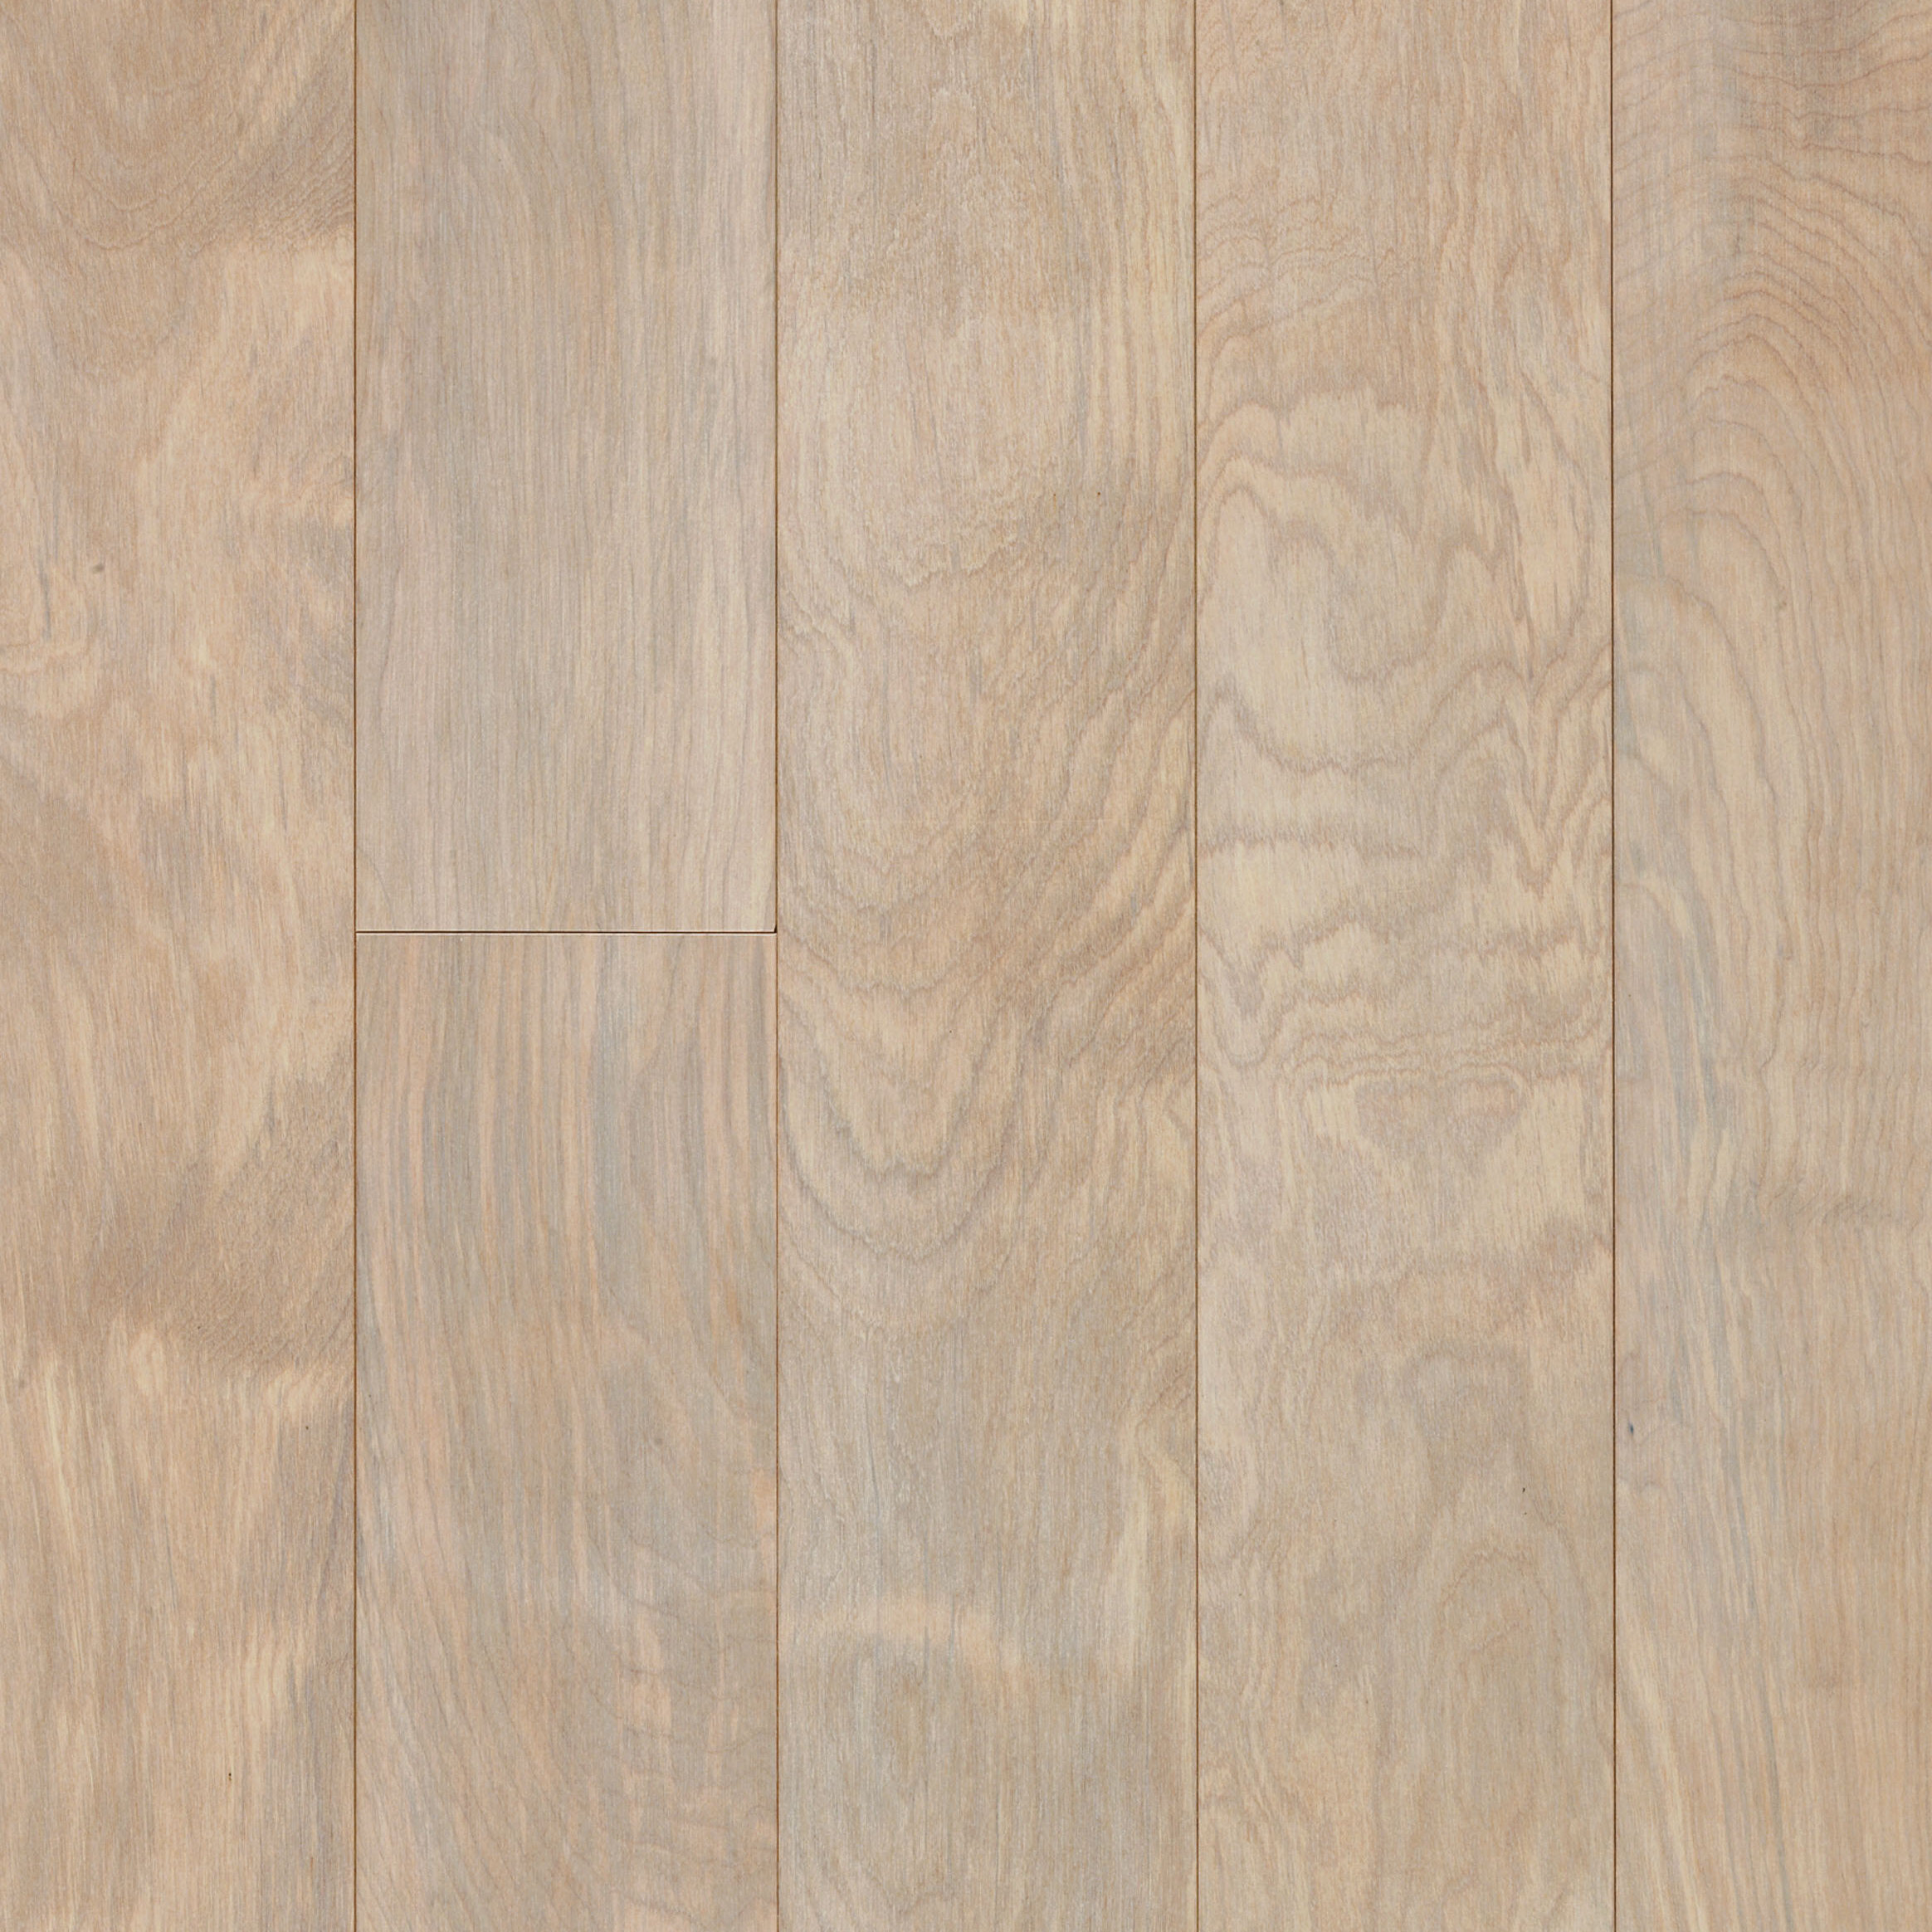 Armstrong Flooring 5 Engineered Birch Hardwood In Driftscape White Reviews